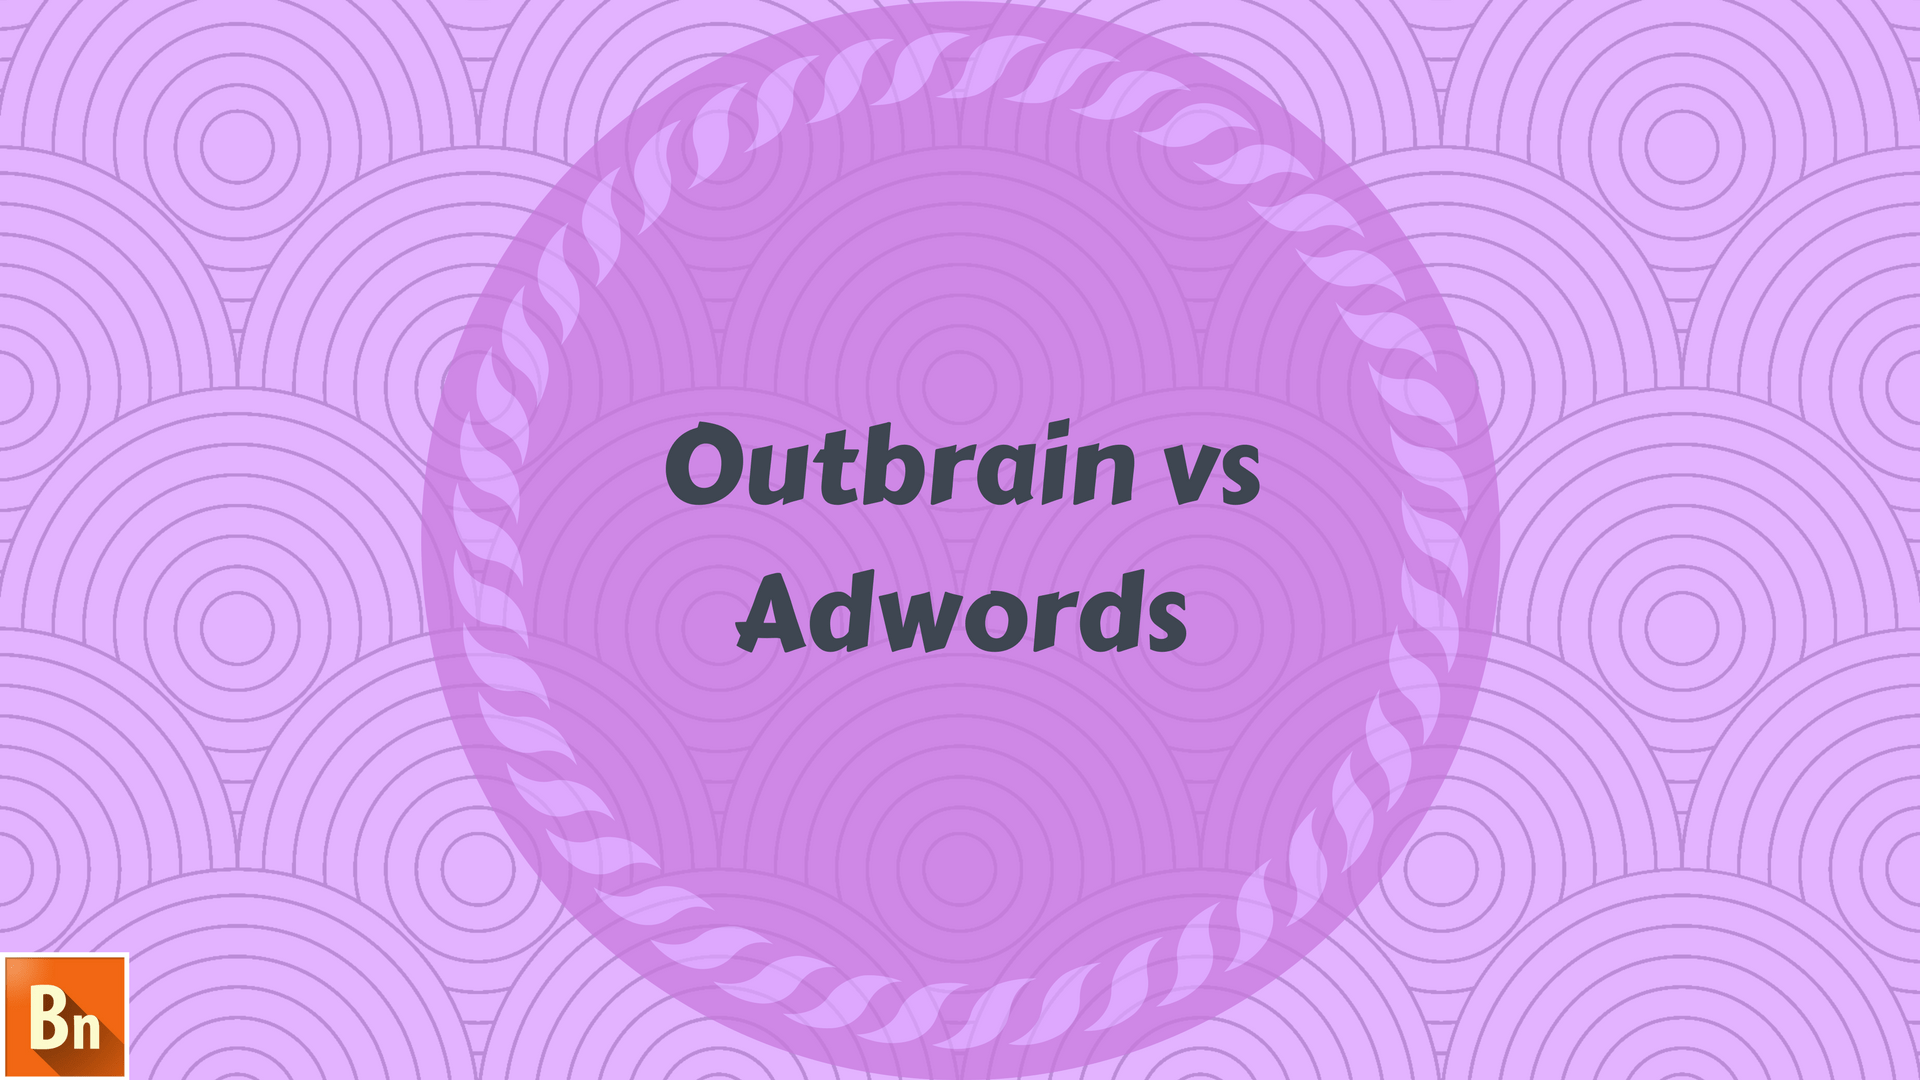 Outbrain vs Adwords- Review 2020